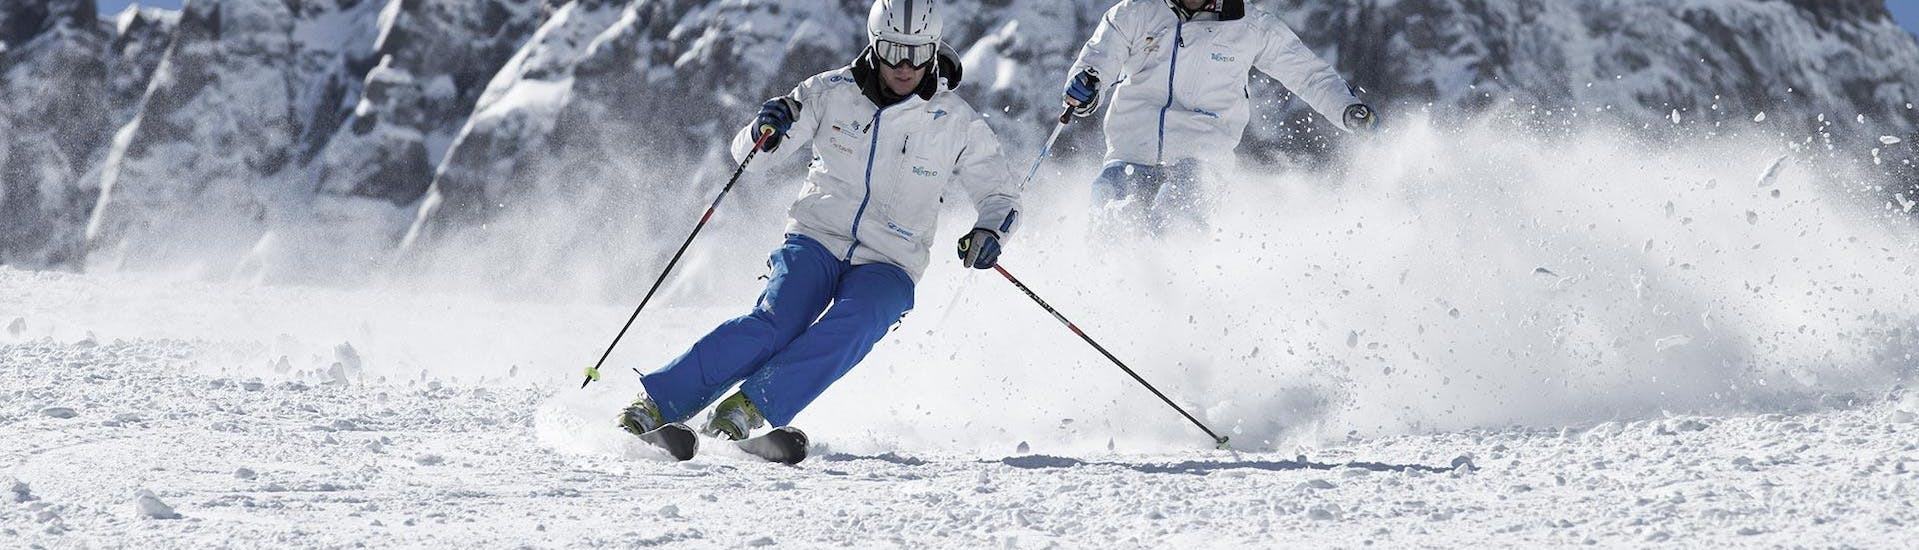 Ski Instructor Private for Adults - All Levels with Skischule Egon Hirt - Hero image